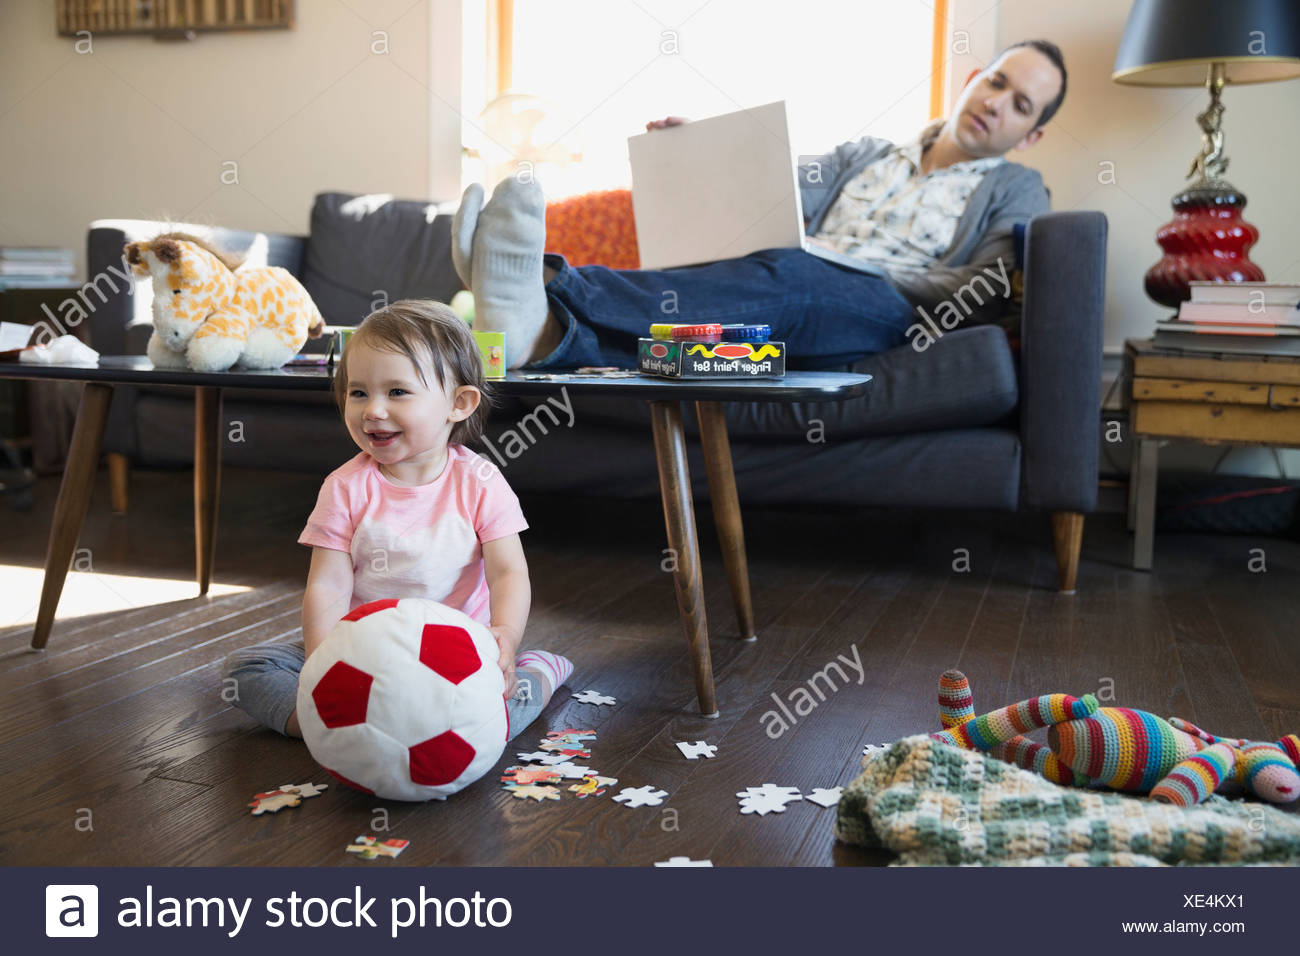 Father with laptop watching baby daughter play - Stock Image